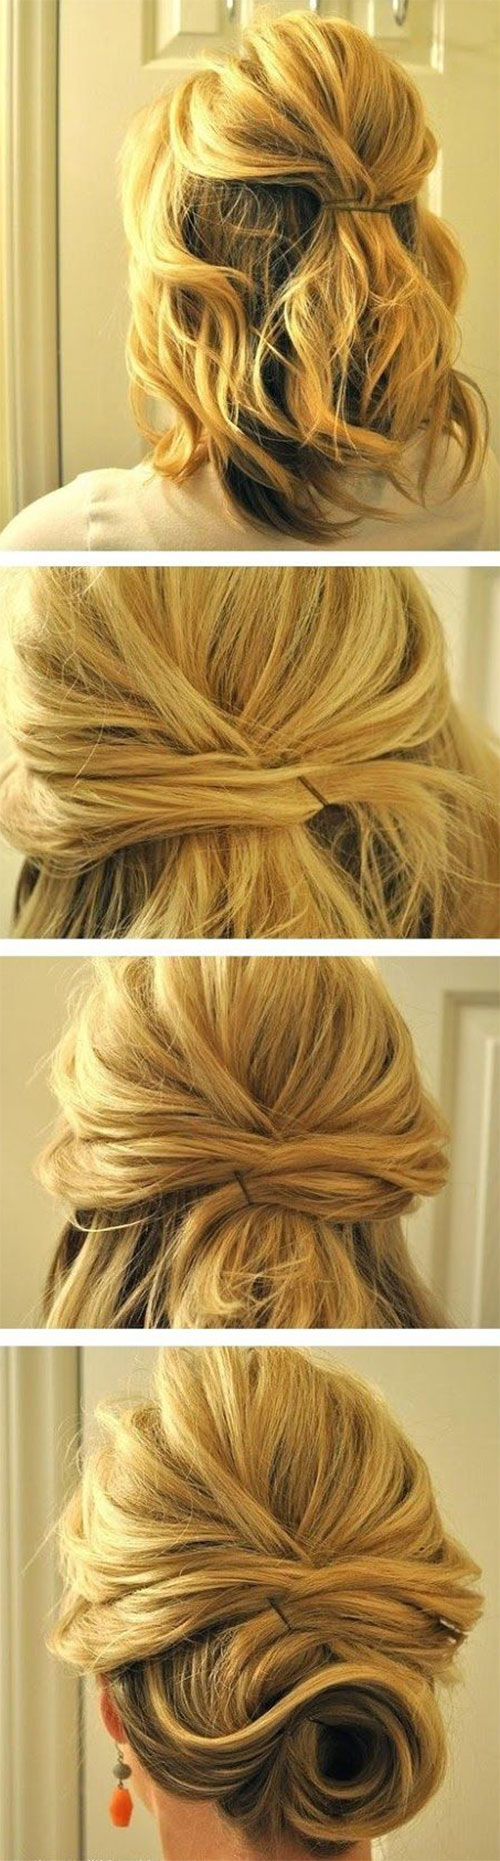 15-Step-By-Step-Summer-Hairstyle-Tutorials-For-Beginners-Learners-2015-15